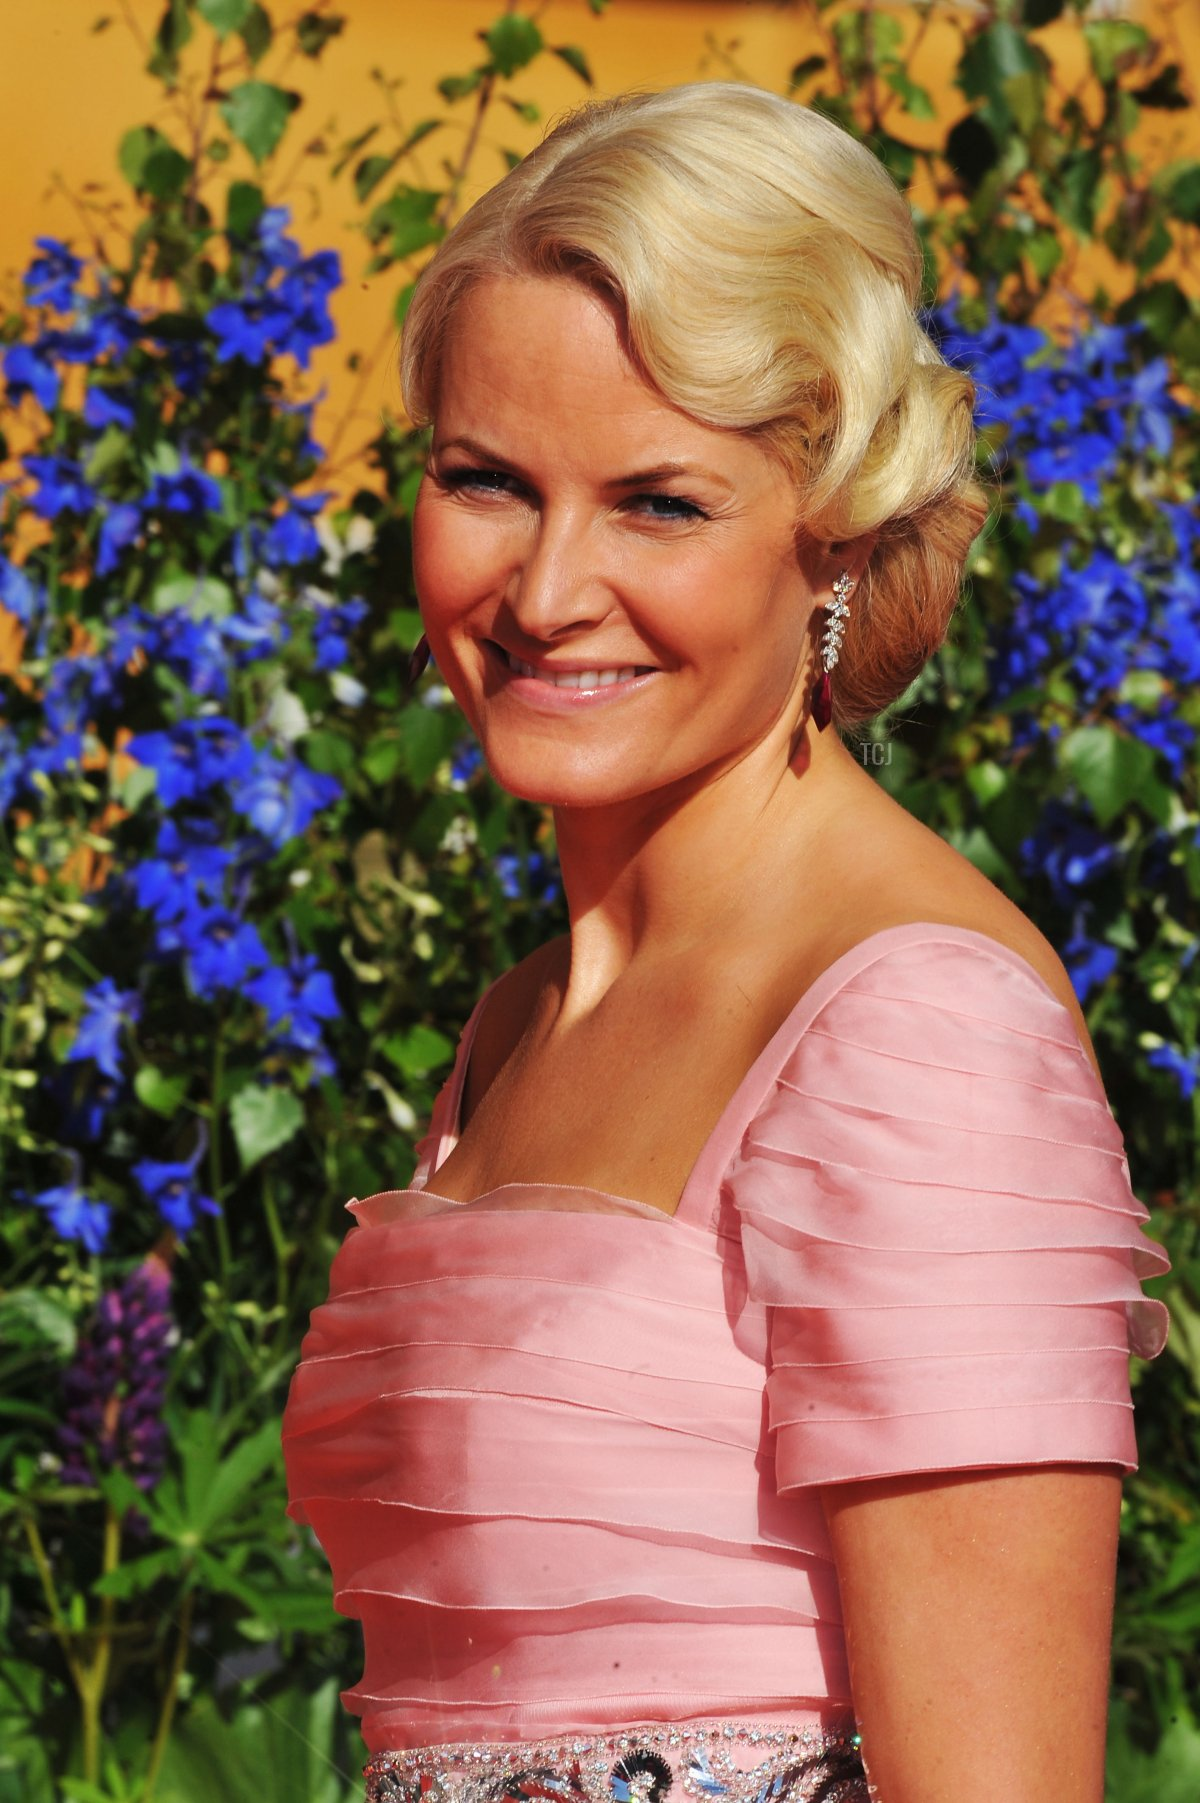 Princess Mette-Marit of Norway attends the Government Pre-Wedding Dinner for Crown Princess Victoria of Sweden and Daniel Westling at The Eric Ericson Hall on June 18, 2010 in Stockholm, Sweden